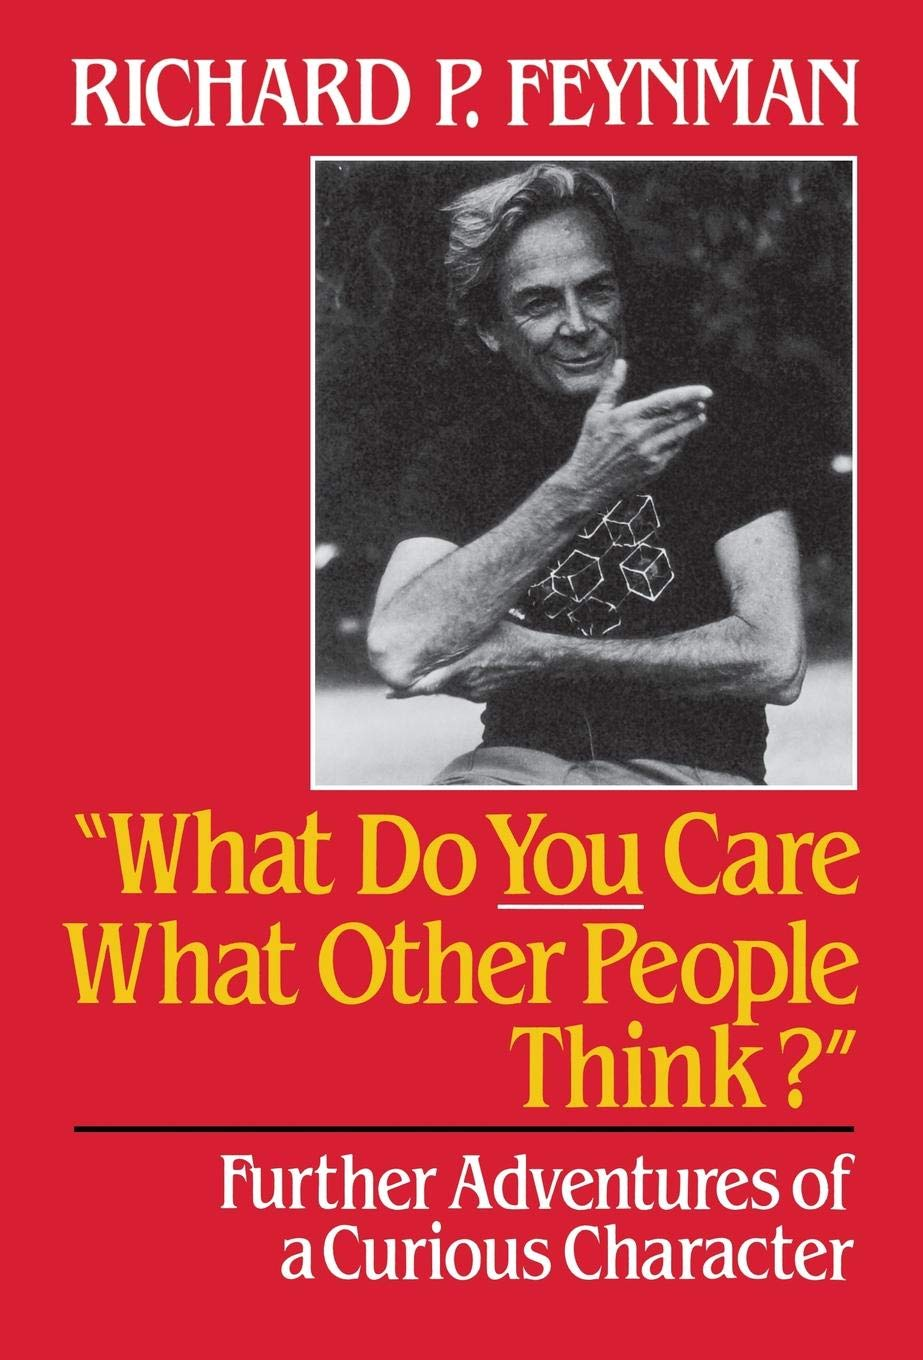 Buy What Do You Care What Other People Think - Further Adventures of a Curious  Character Book Online at Low Prices in India | What Do You Care What Other  ...